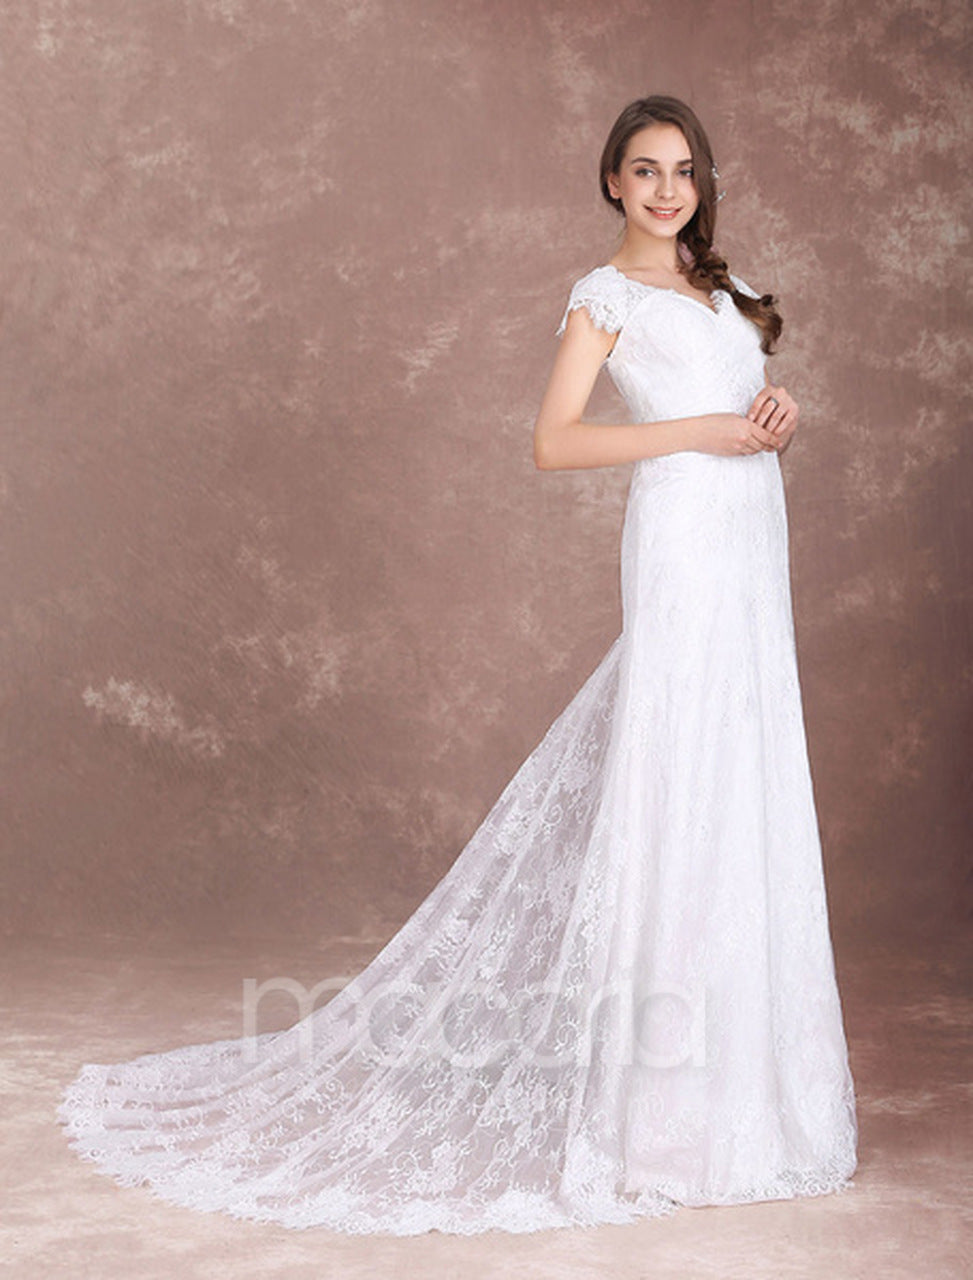 17a26eead00 Wedding Dresses - Short Sleeve V-Neck Lace Trumpet